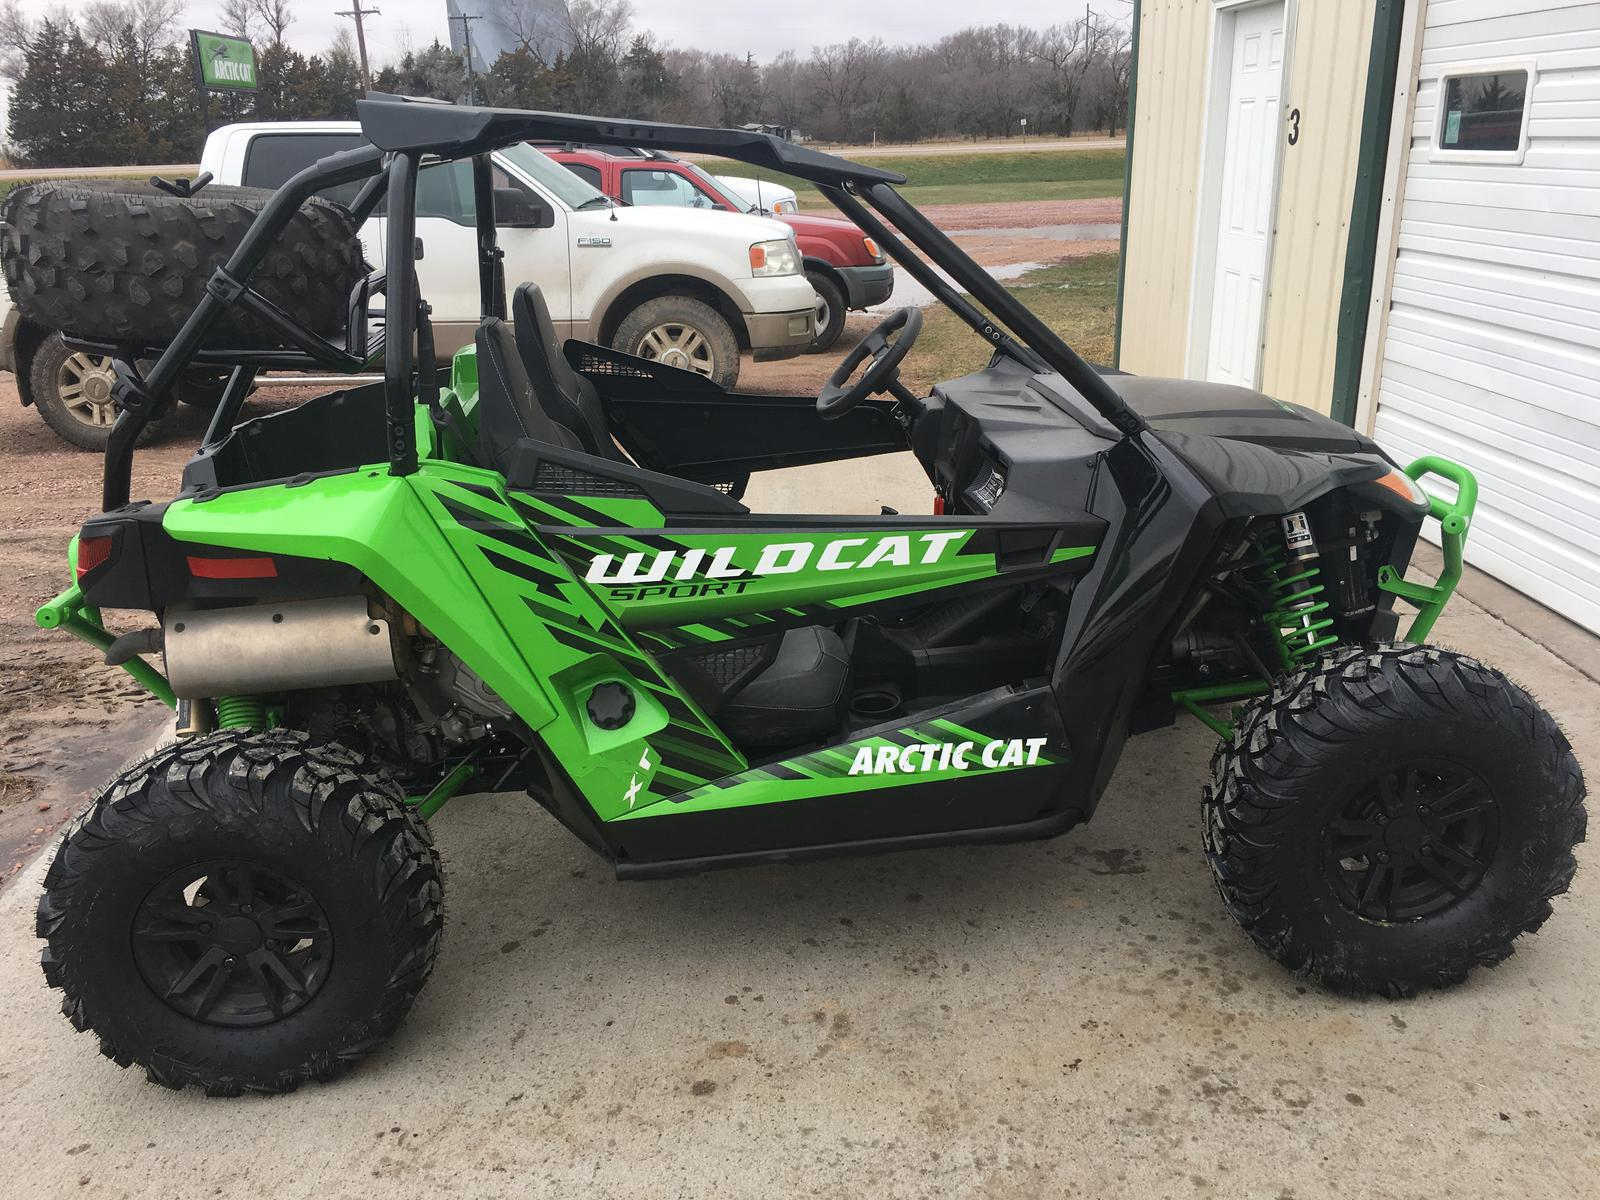 2016 Arctic Cat Wildcat Sport Xt For In O Neill Ne Red Motorsports Neligh 402 887 5076